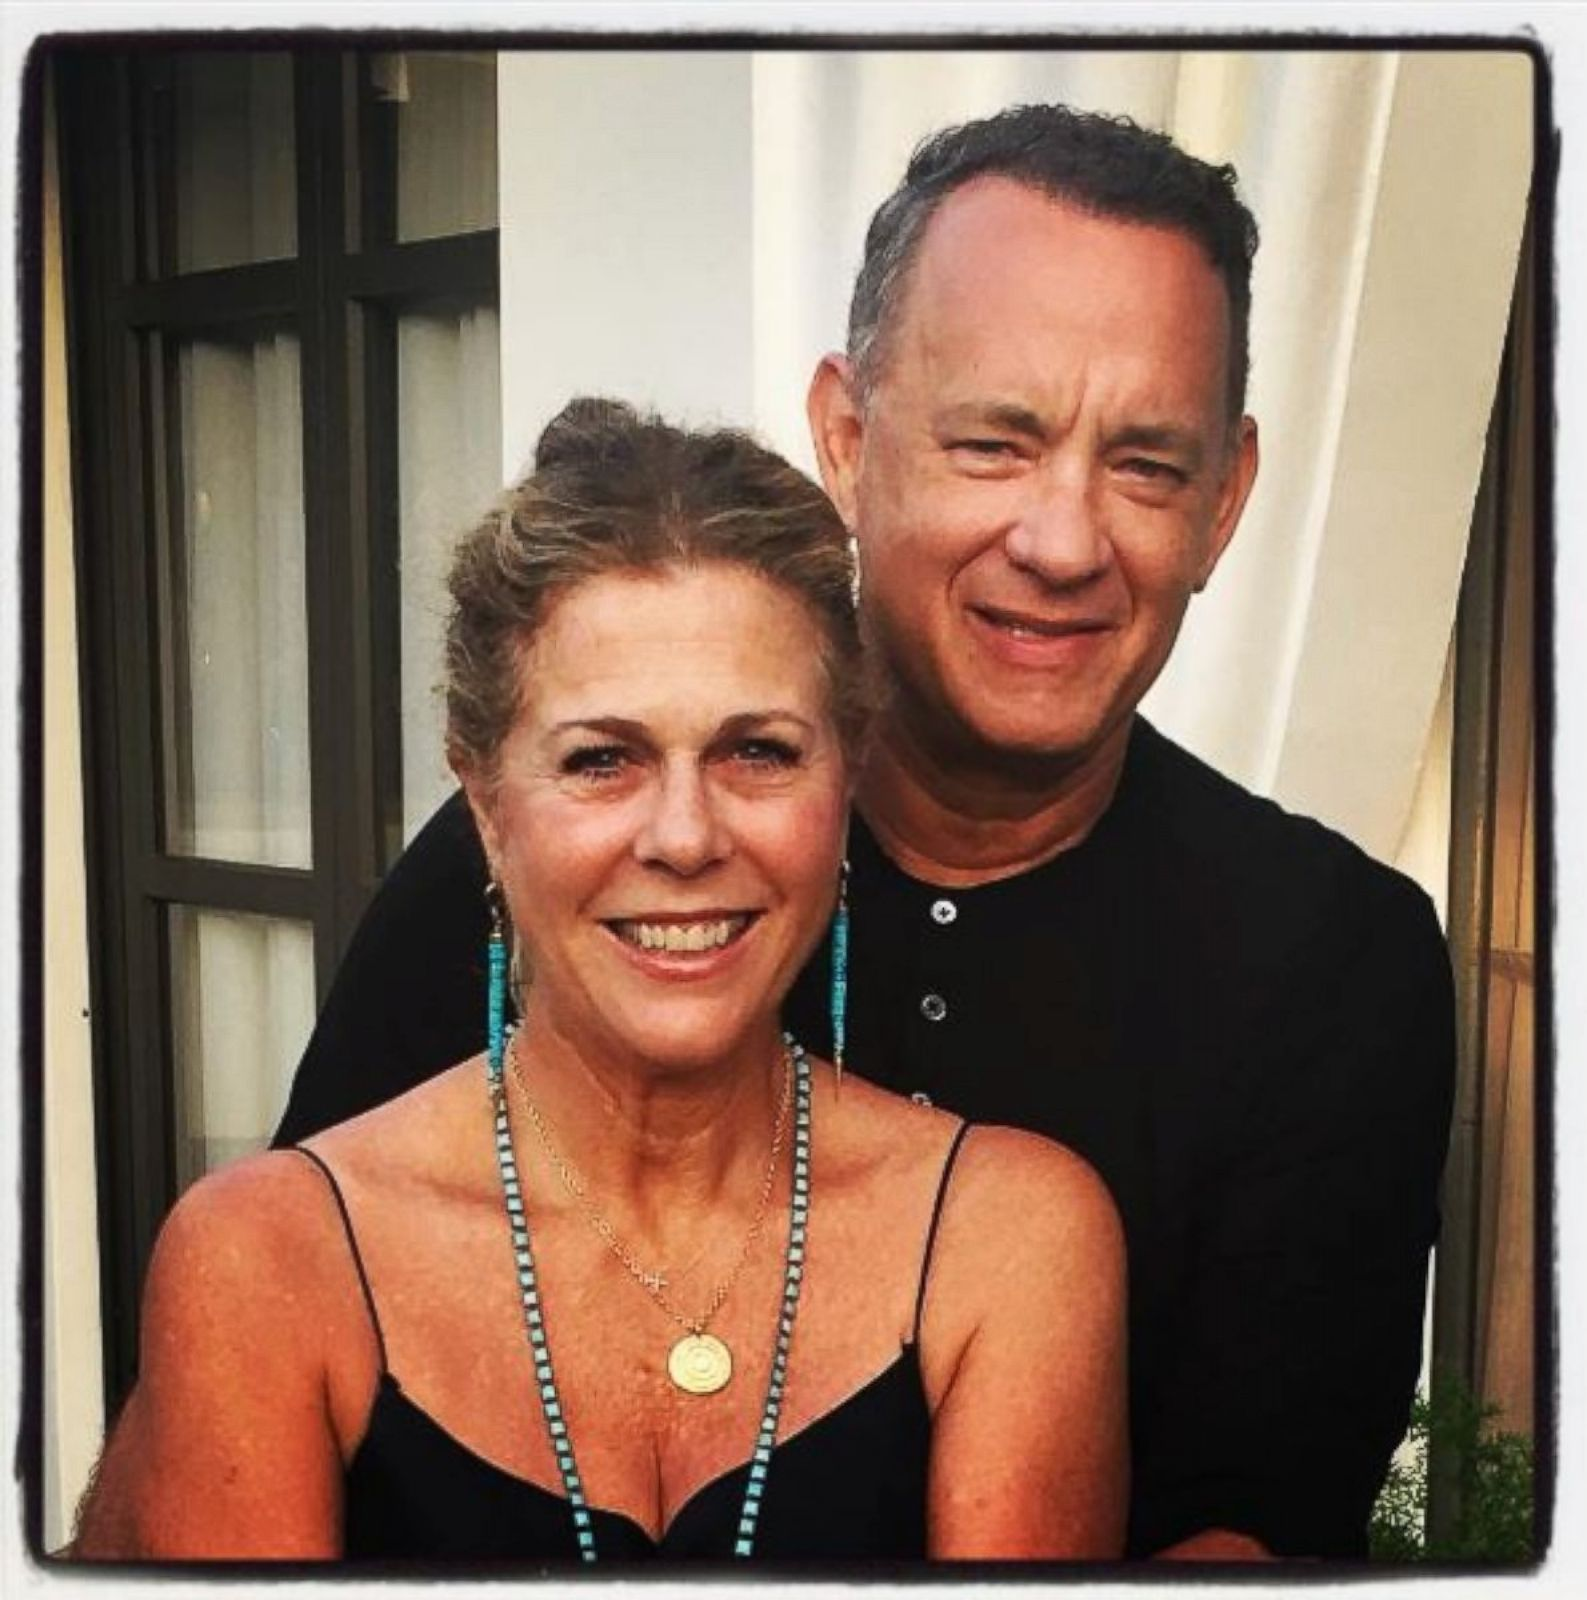 Rita Wilson And Tom Hanks Celebrate 29 Years Of Marriage Picture Celebrities On Social Media Abc News